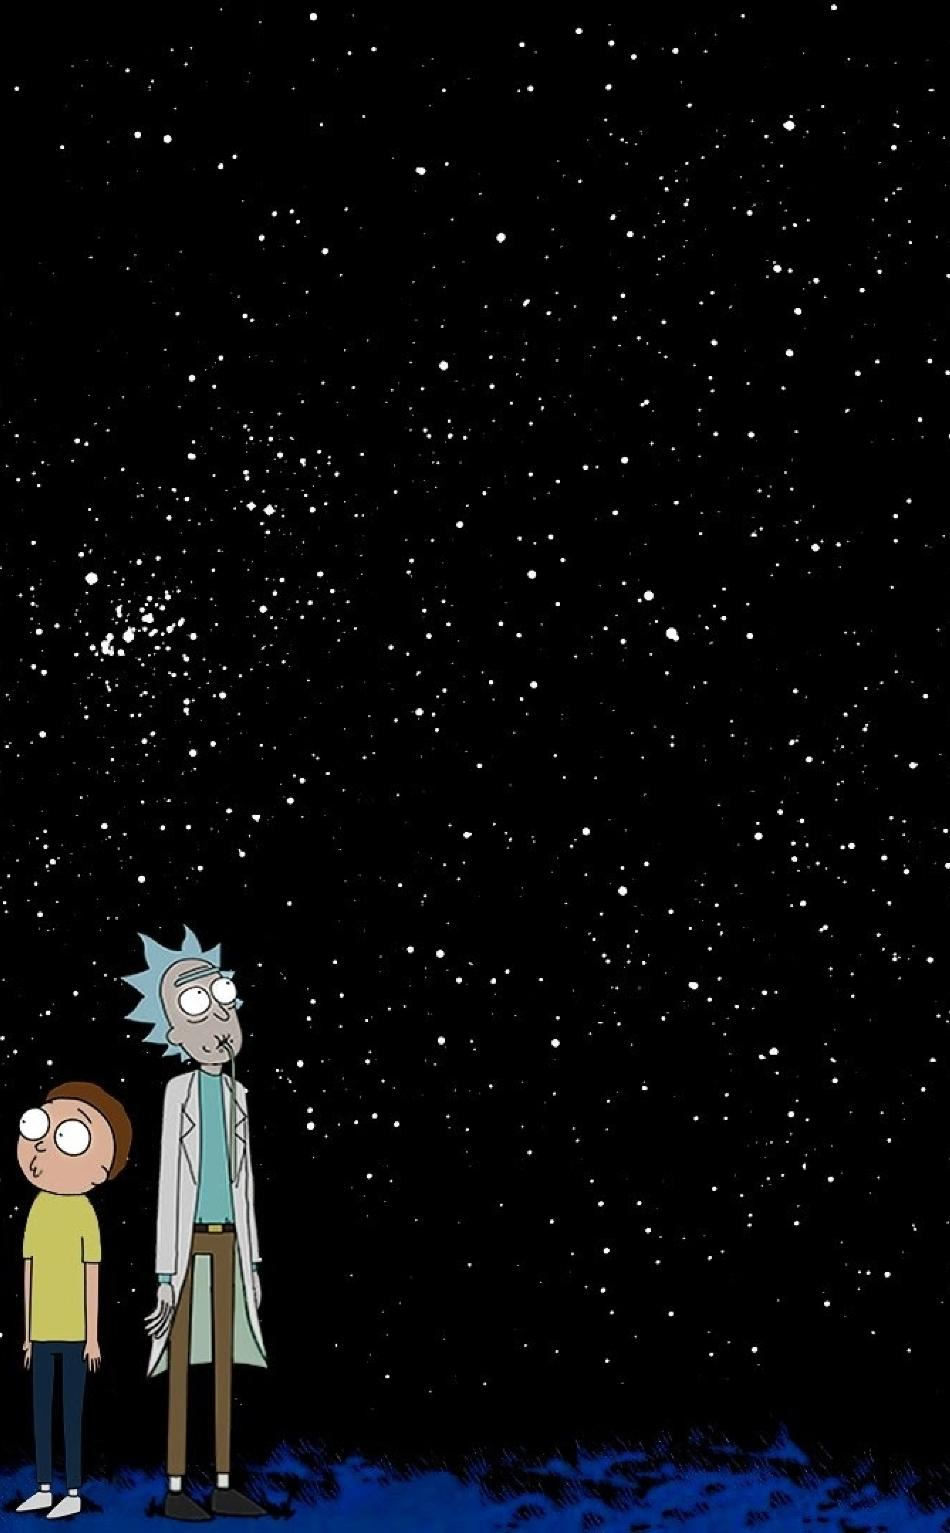 Rick And Morty Wallpaper Iphone X : morty, wallpaper, iphone, Morty, IPhone, Wallpapers, Wallpaper